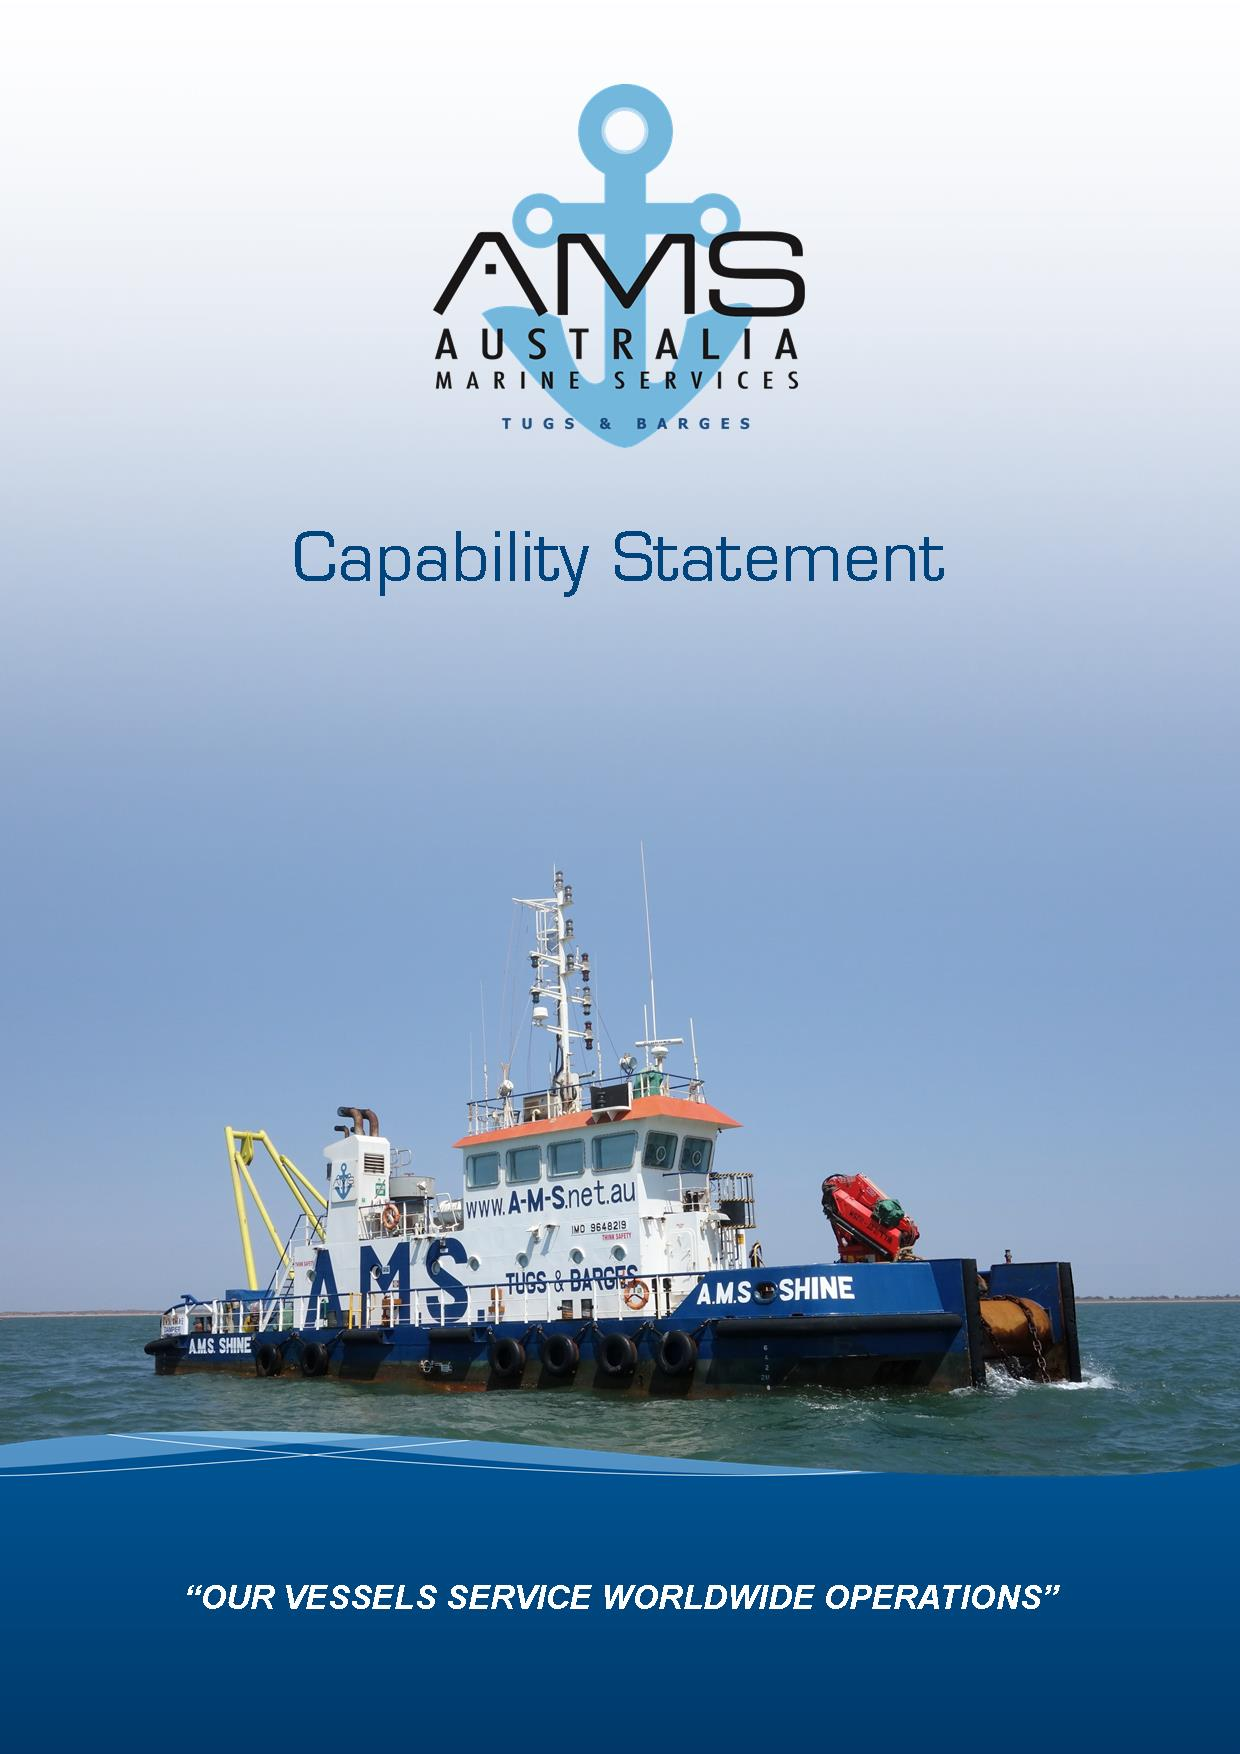 Capability Statement image for Australia Marine Services